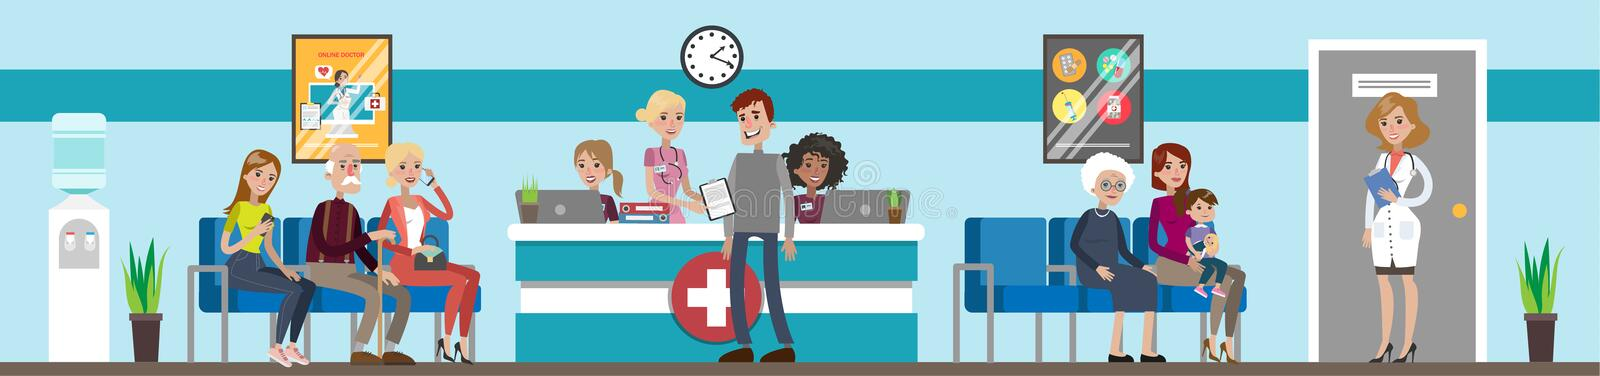 Reception at hospital. Patients and doctors waiting stock illustration